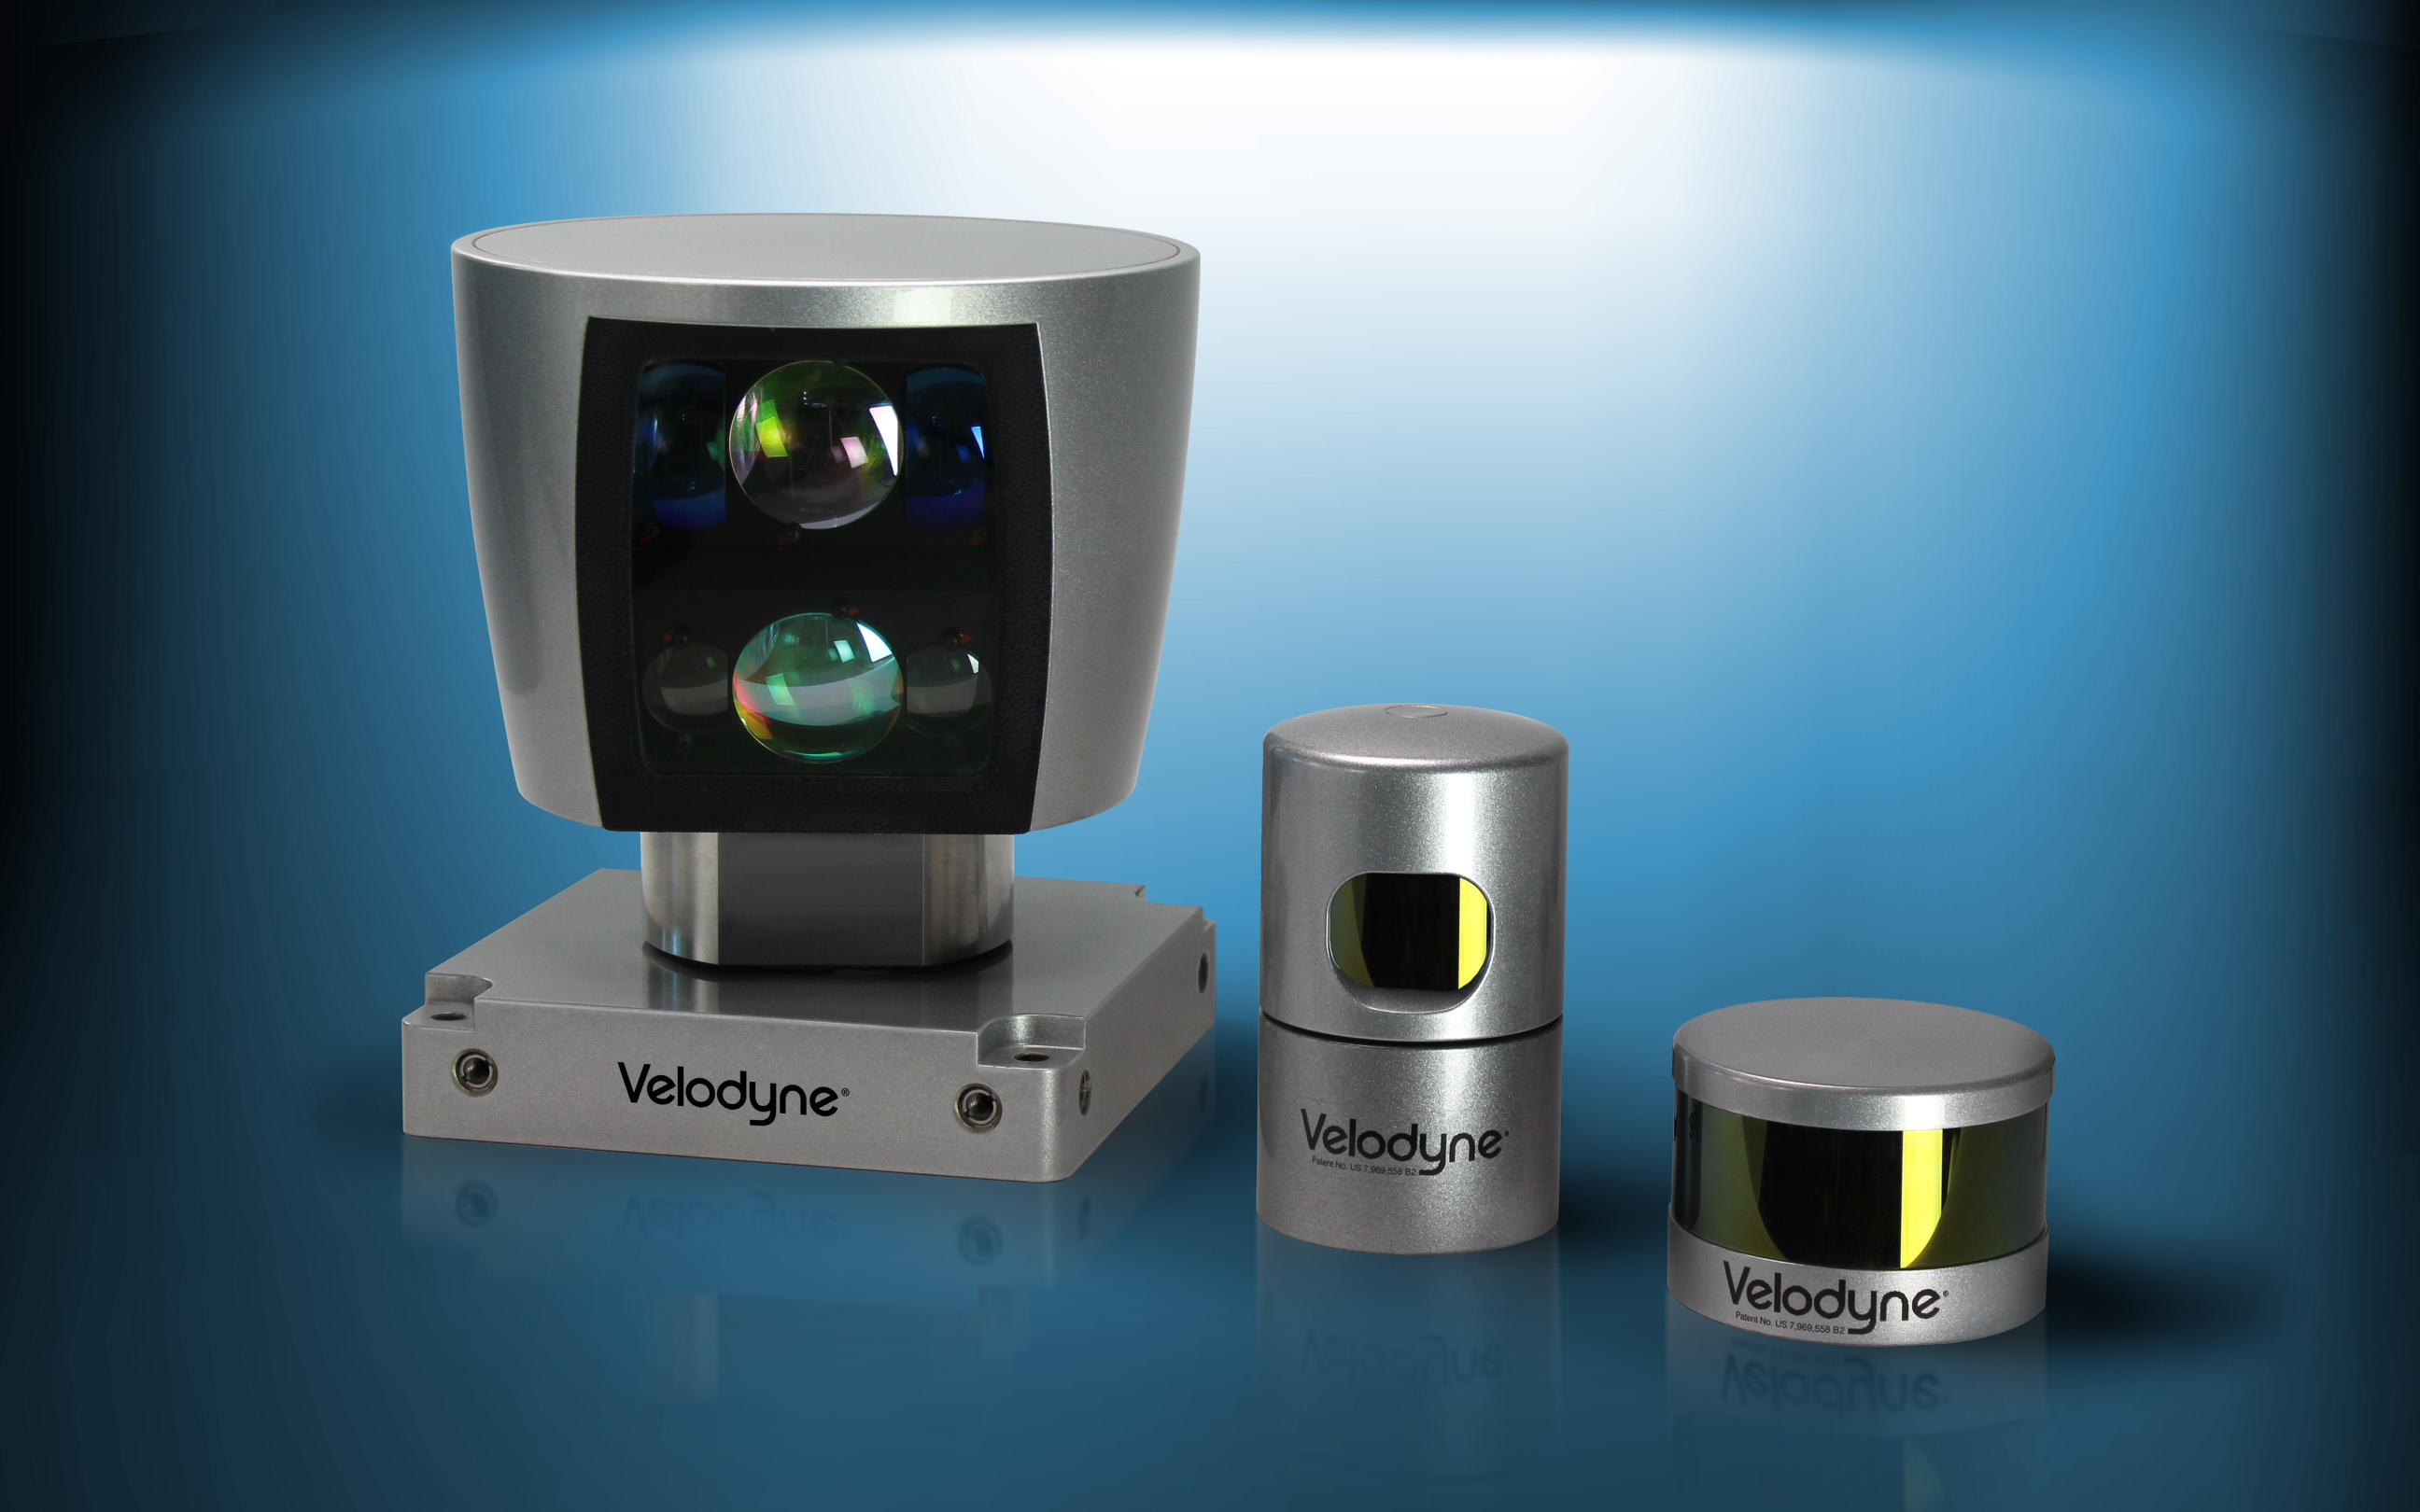 Cars Wallpaper Gif At Ces Velodyne Lidar Asks The Industry To Come To Its